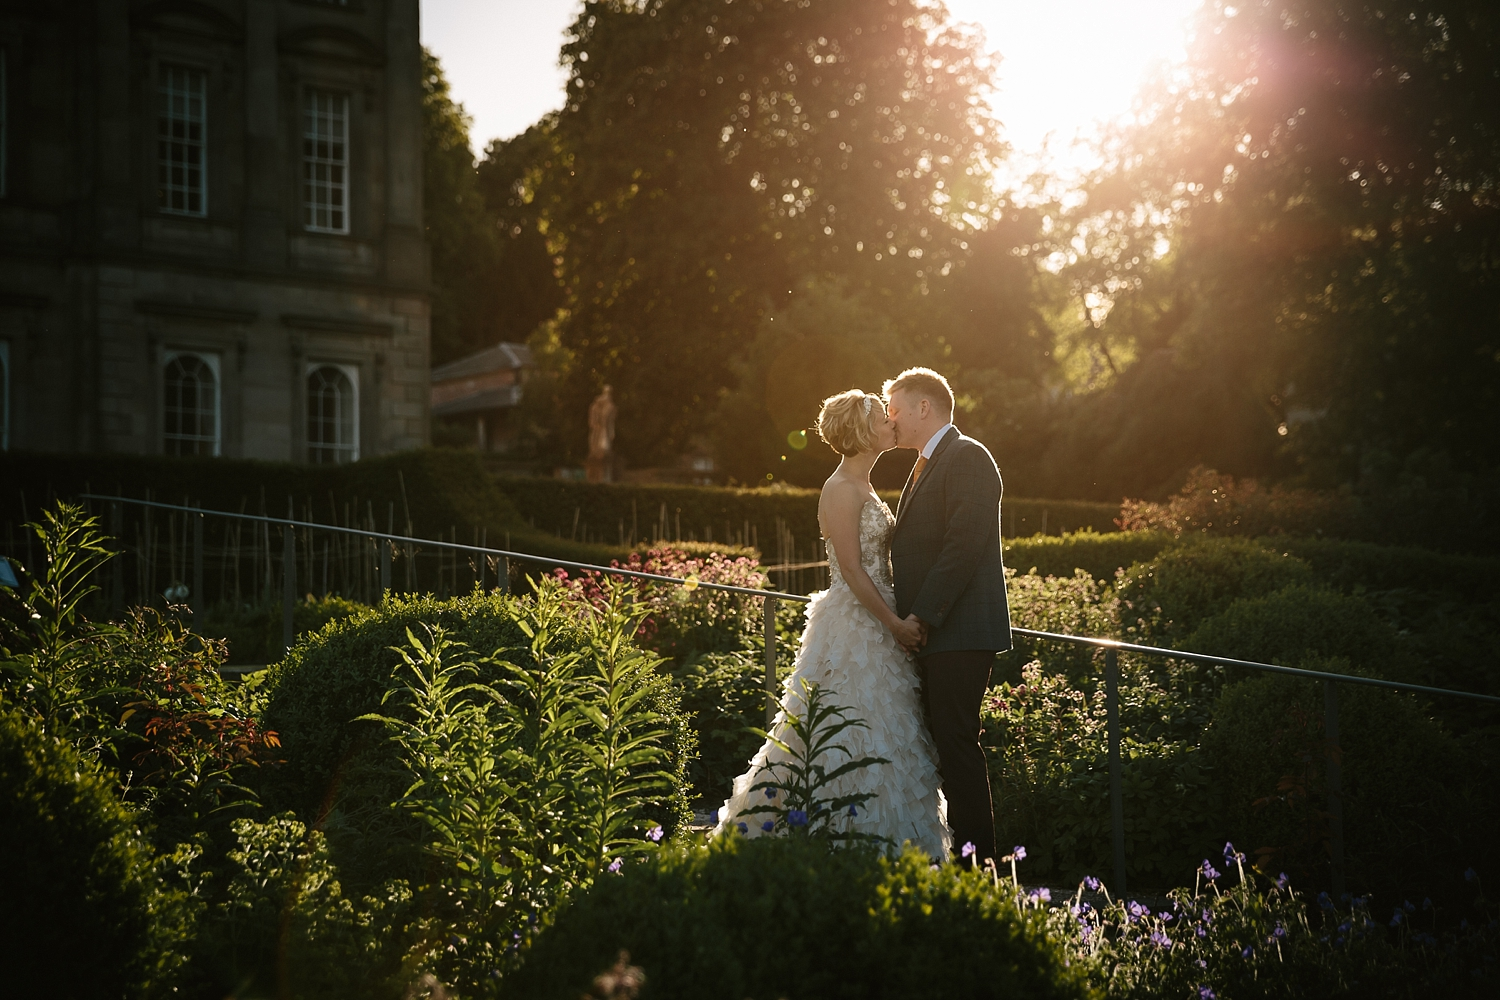 Natlie-Matthew-yorkshire-natural-relaxed-fun-documentary-reportage-candid-wedding-photography-photographer-Derby-Nottingham-Derbyshire-Nottinghamshire-Leicestershire-Lincolnshire-East-Midlands-83.jpg